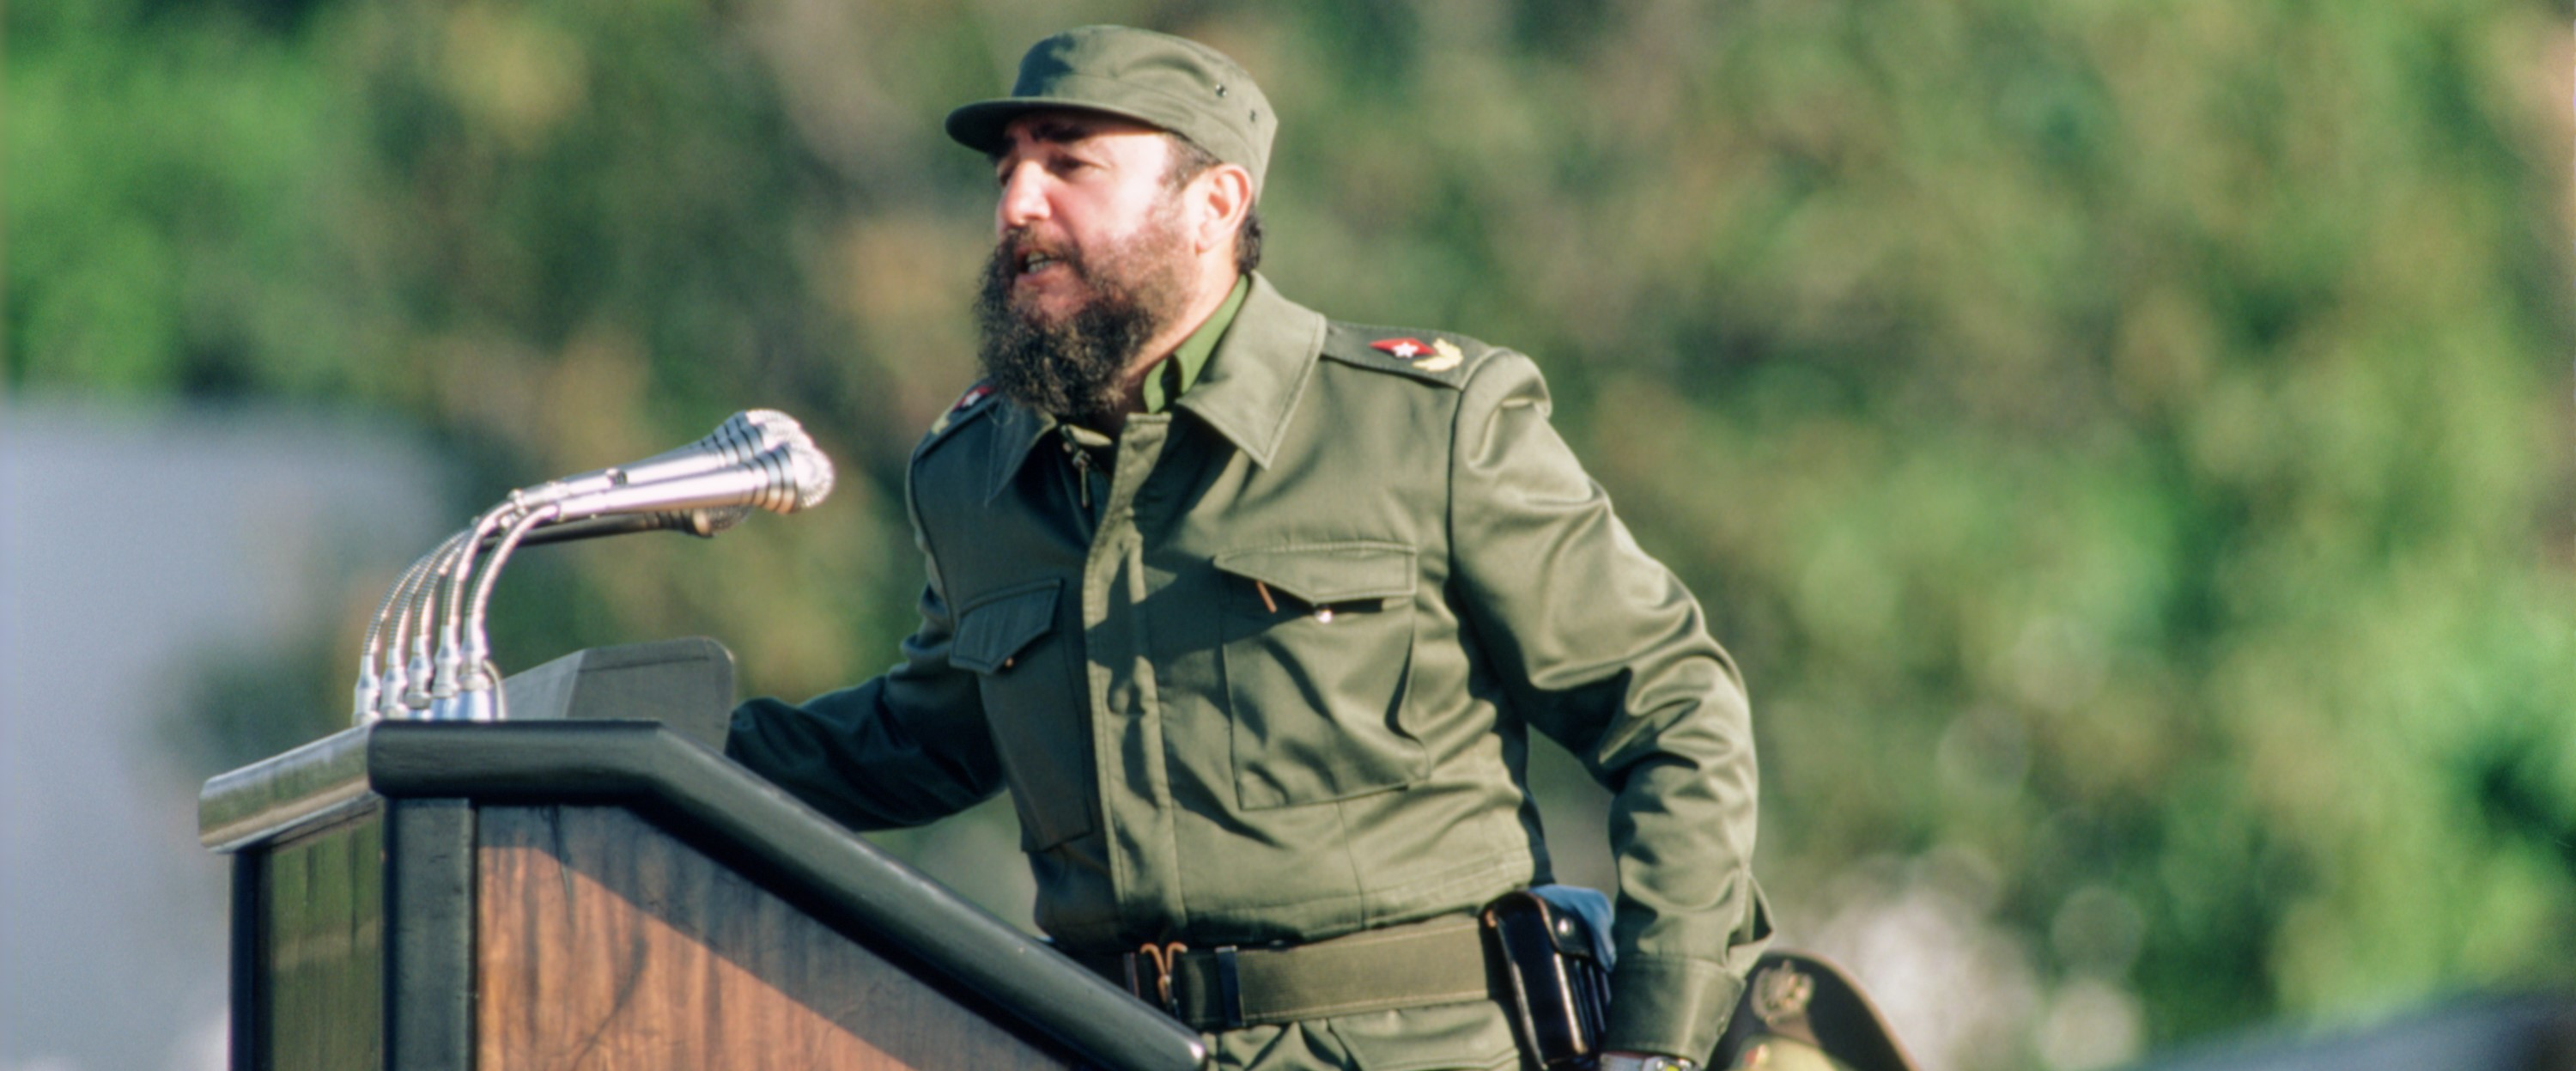 Fidel Castro addressing a Havana crowd, 1981. Photo: Getty Images/David Hume Kennerly